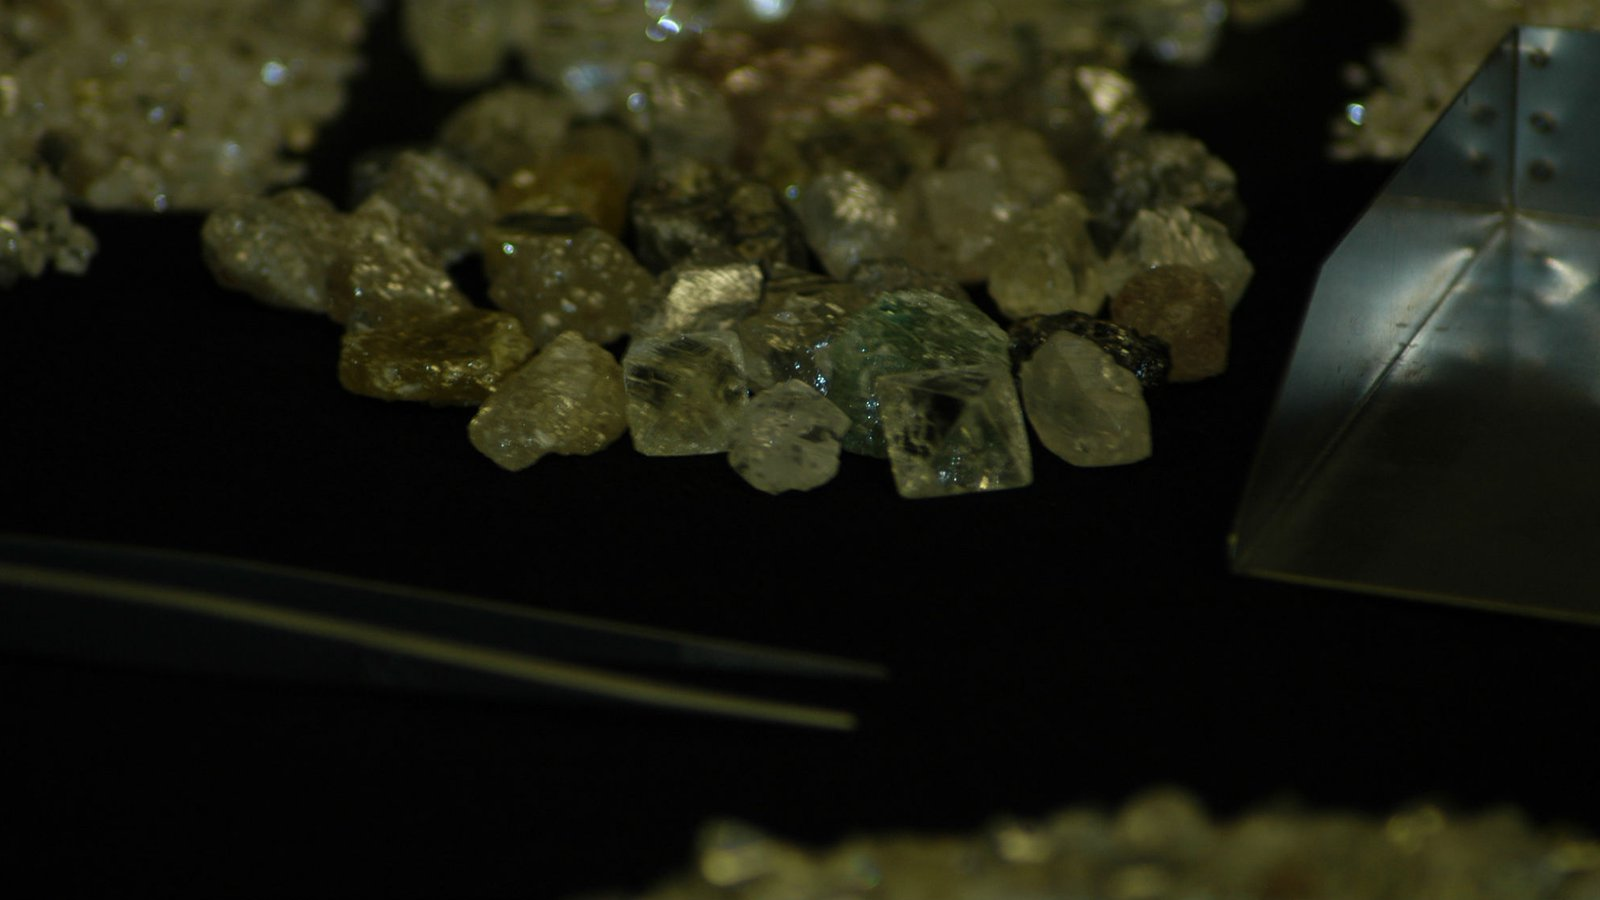 Angola diamonds